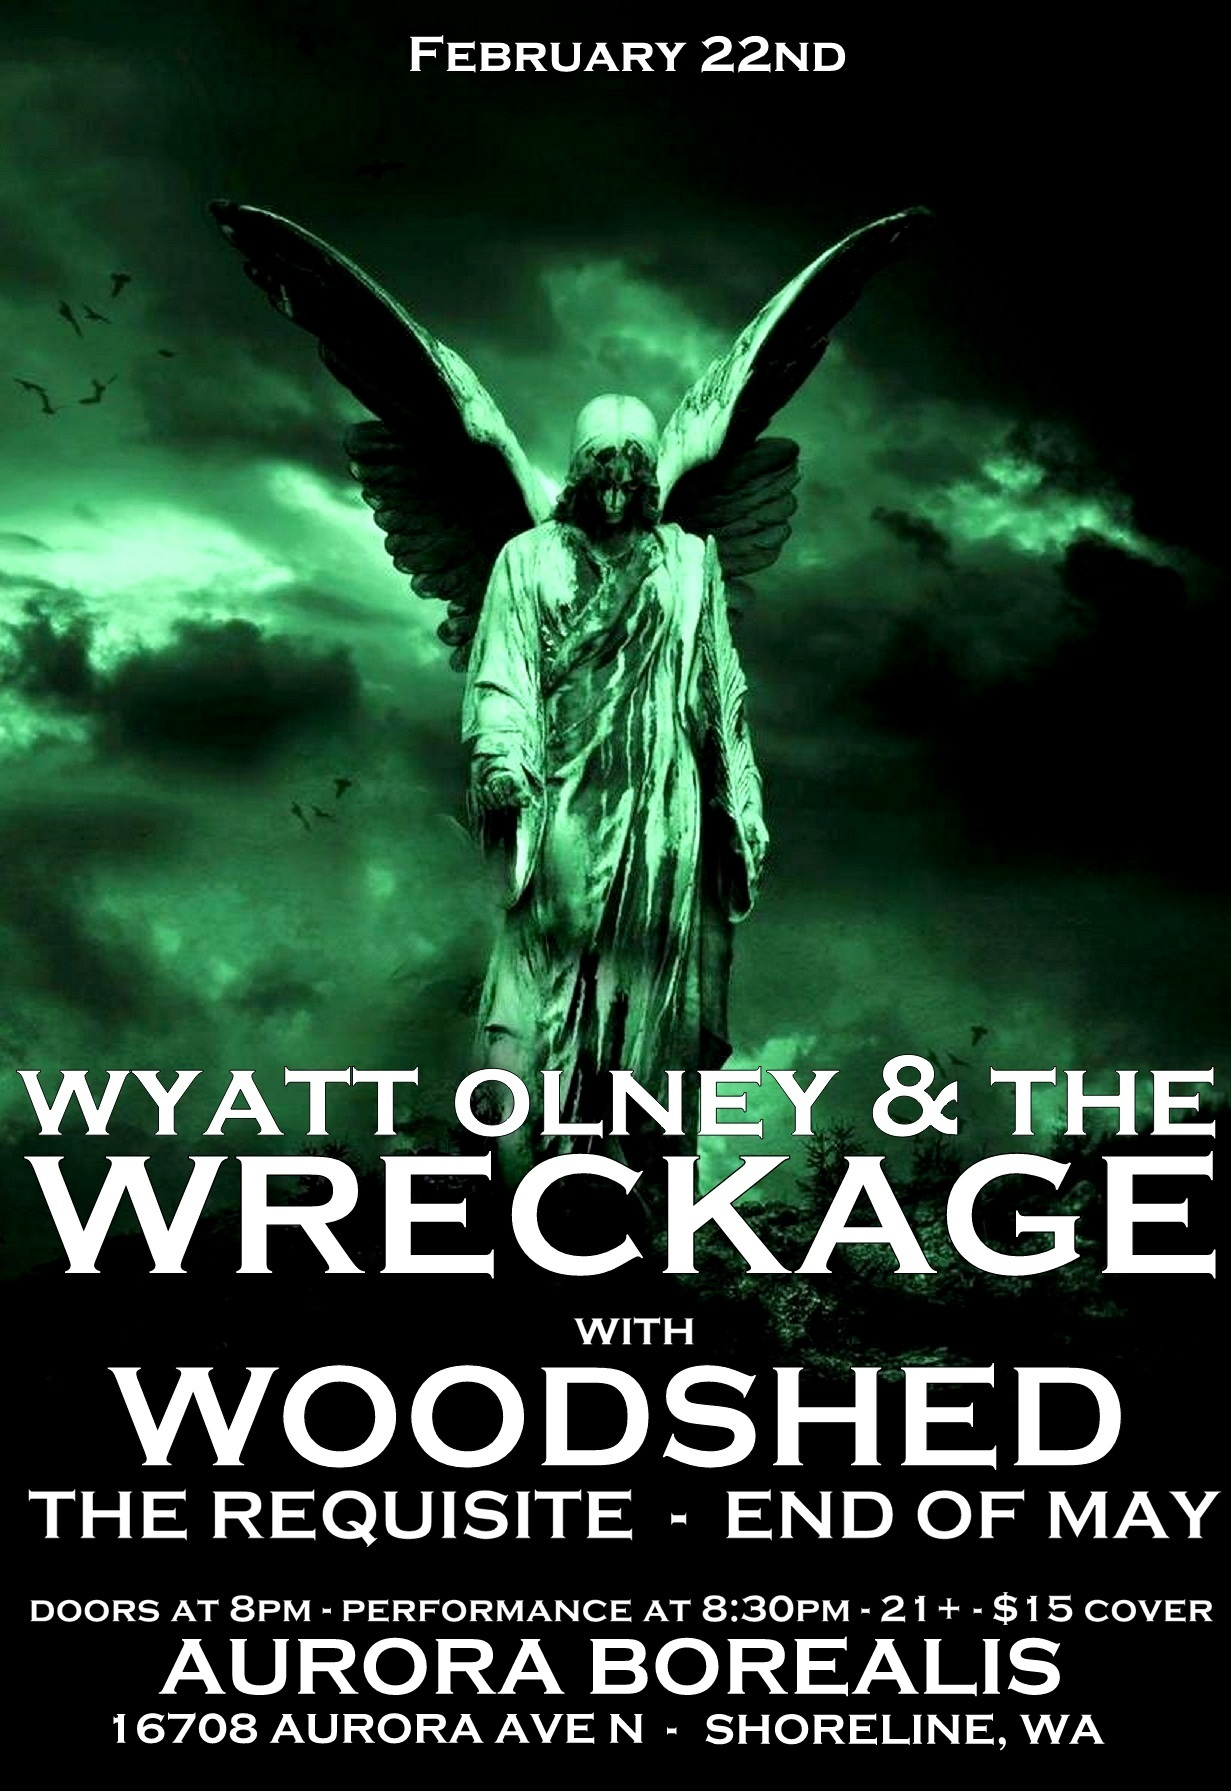 Wyatt Olney and the Wreckage with WOODSHED – The Requisite – End of May